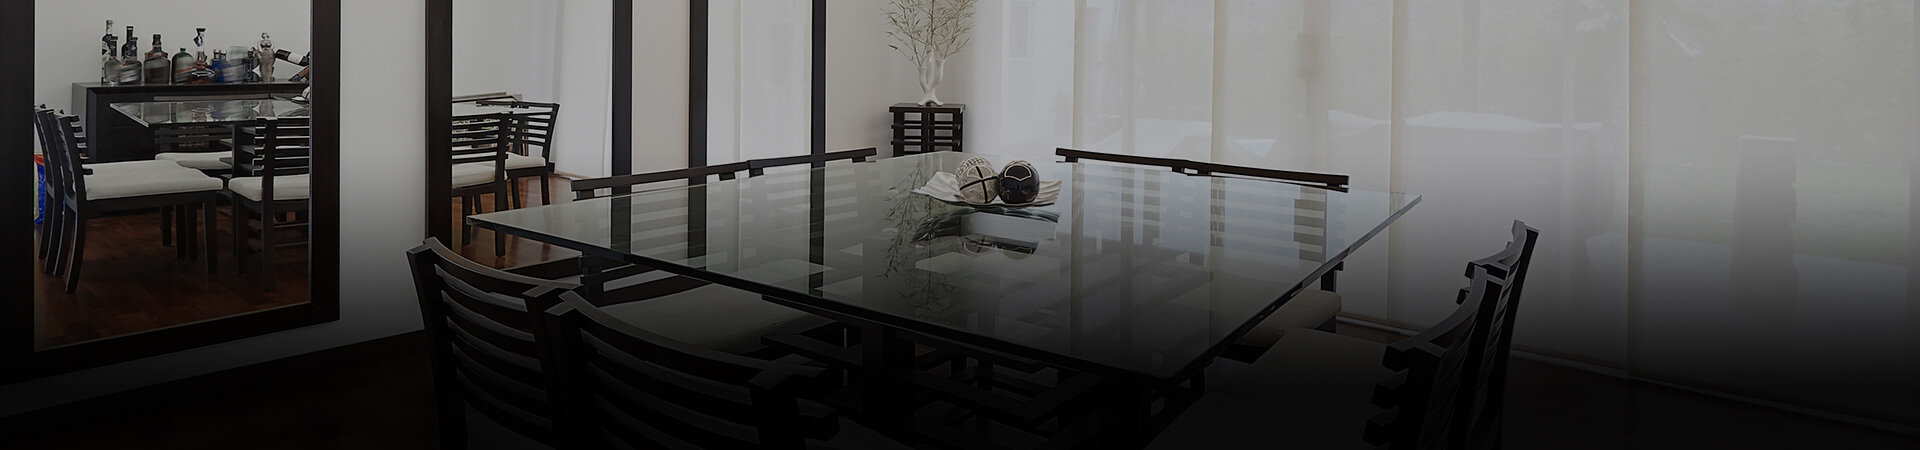 Customised mirrors and tables